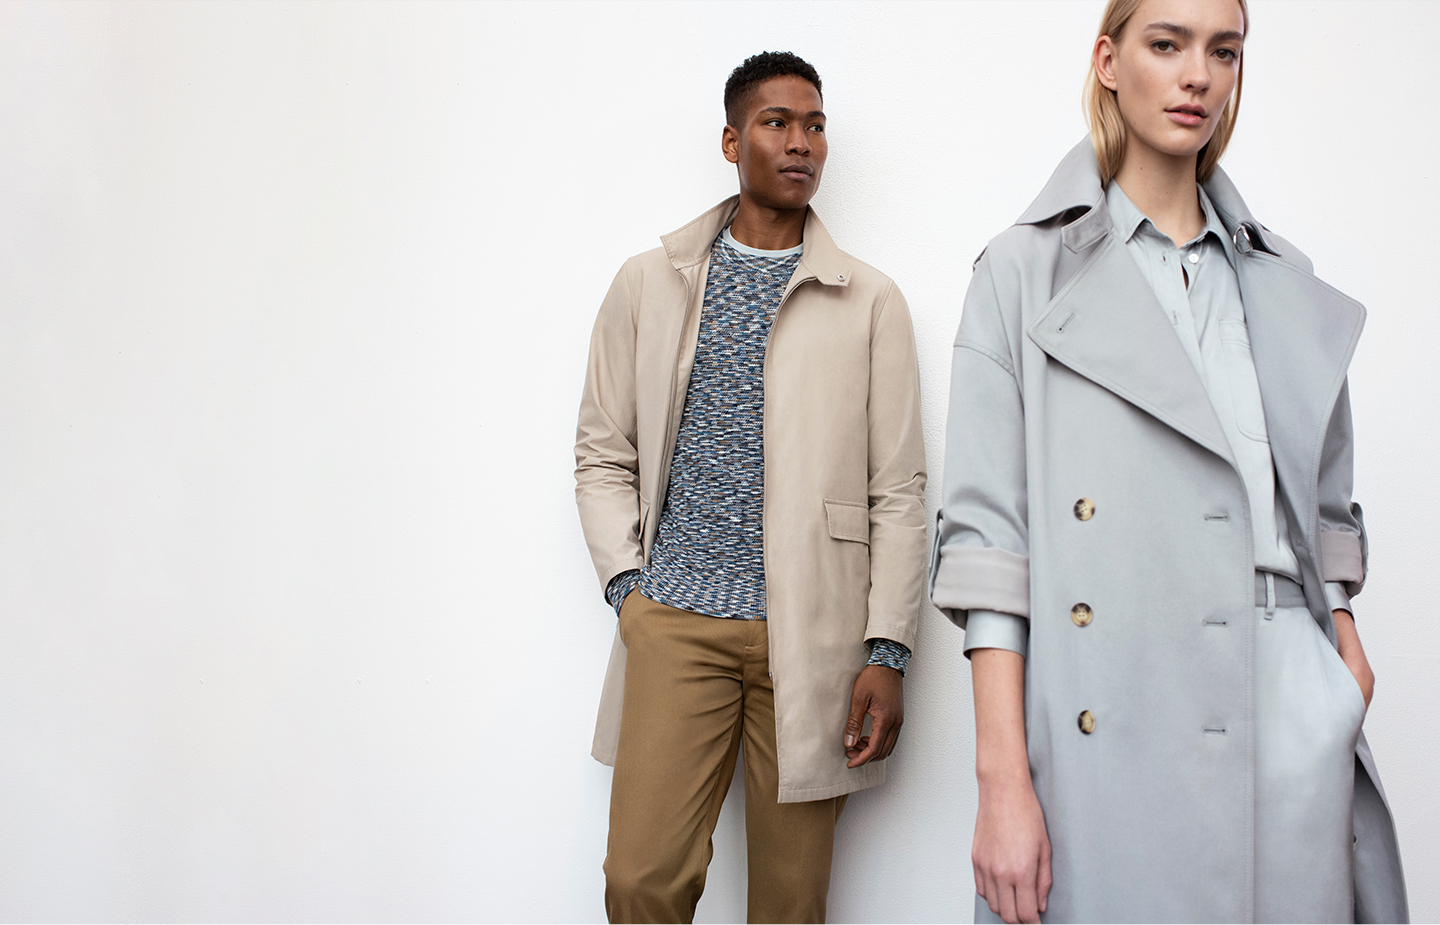 Shop men's and women's outerwear